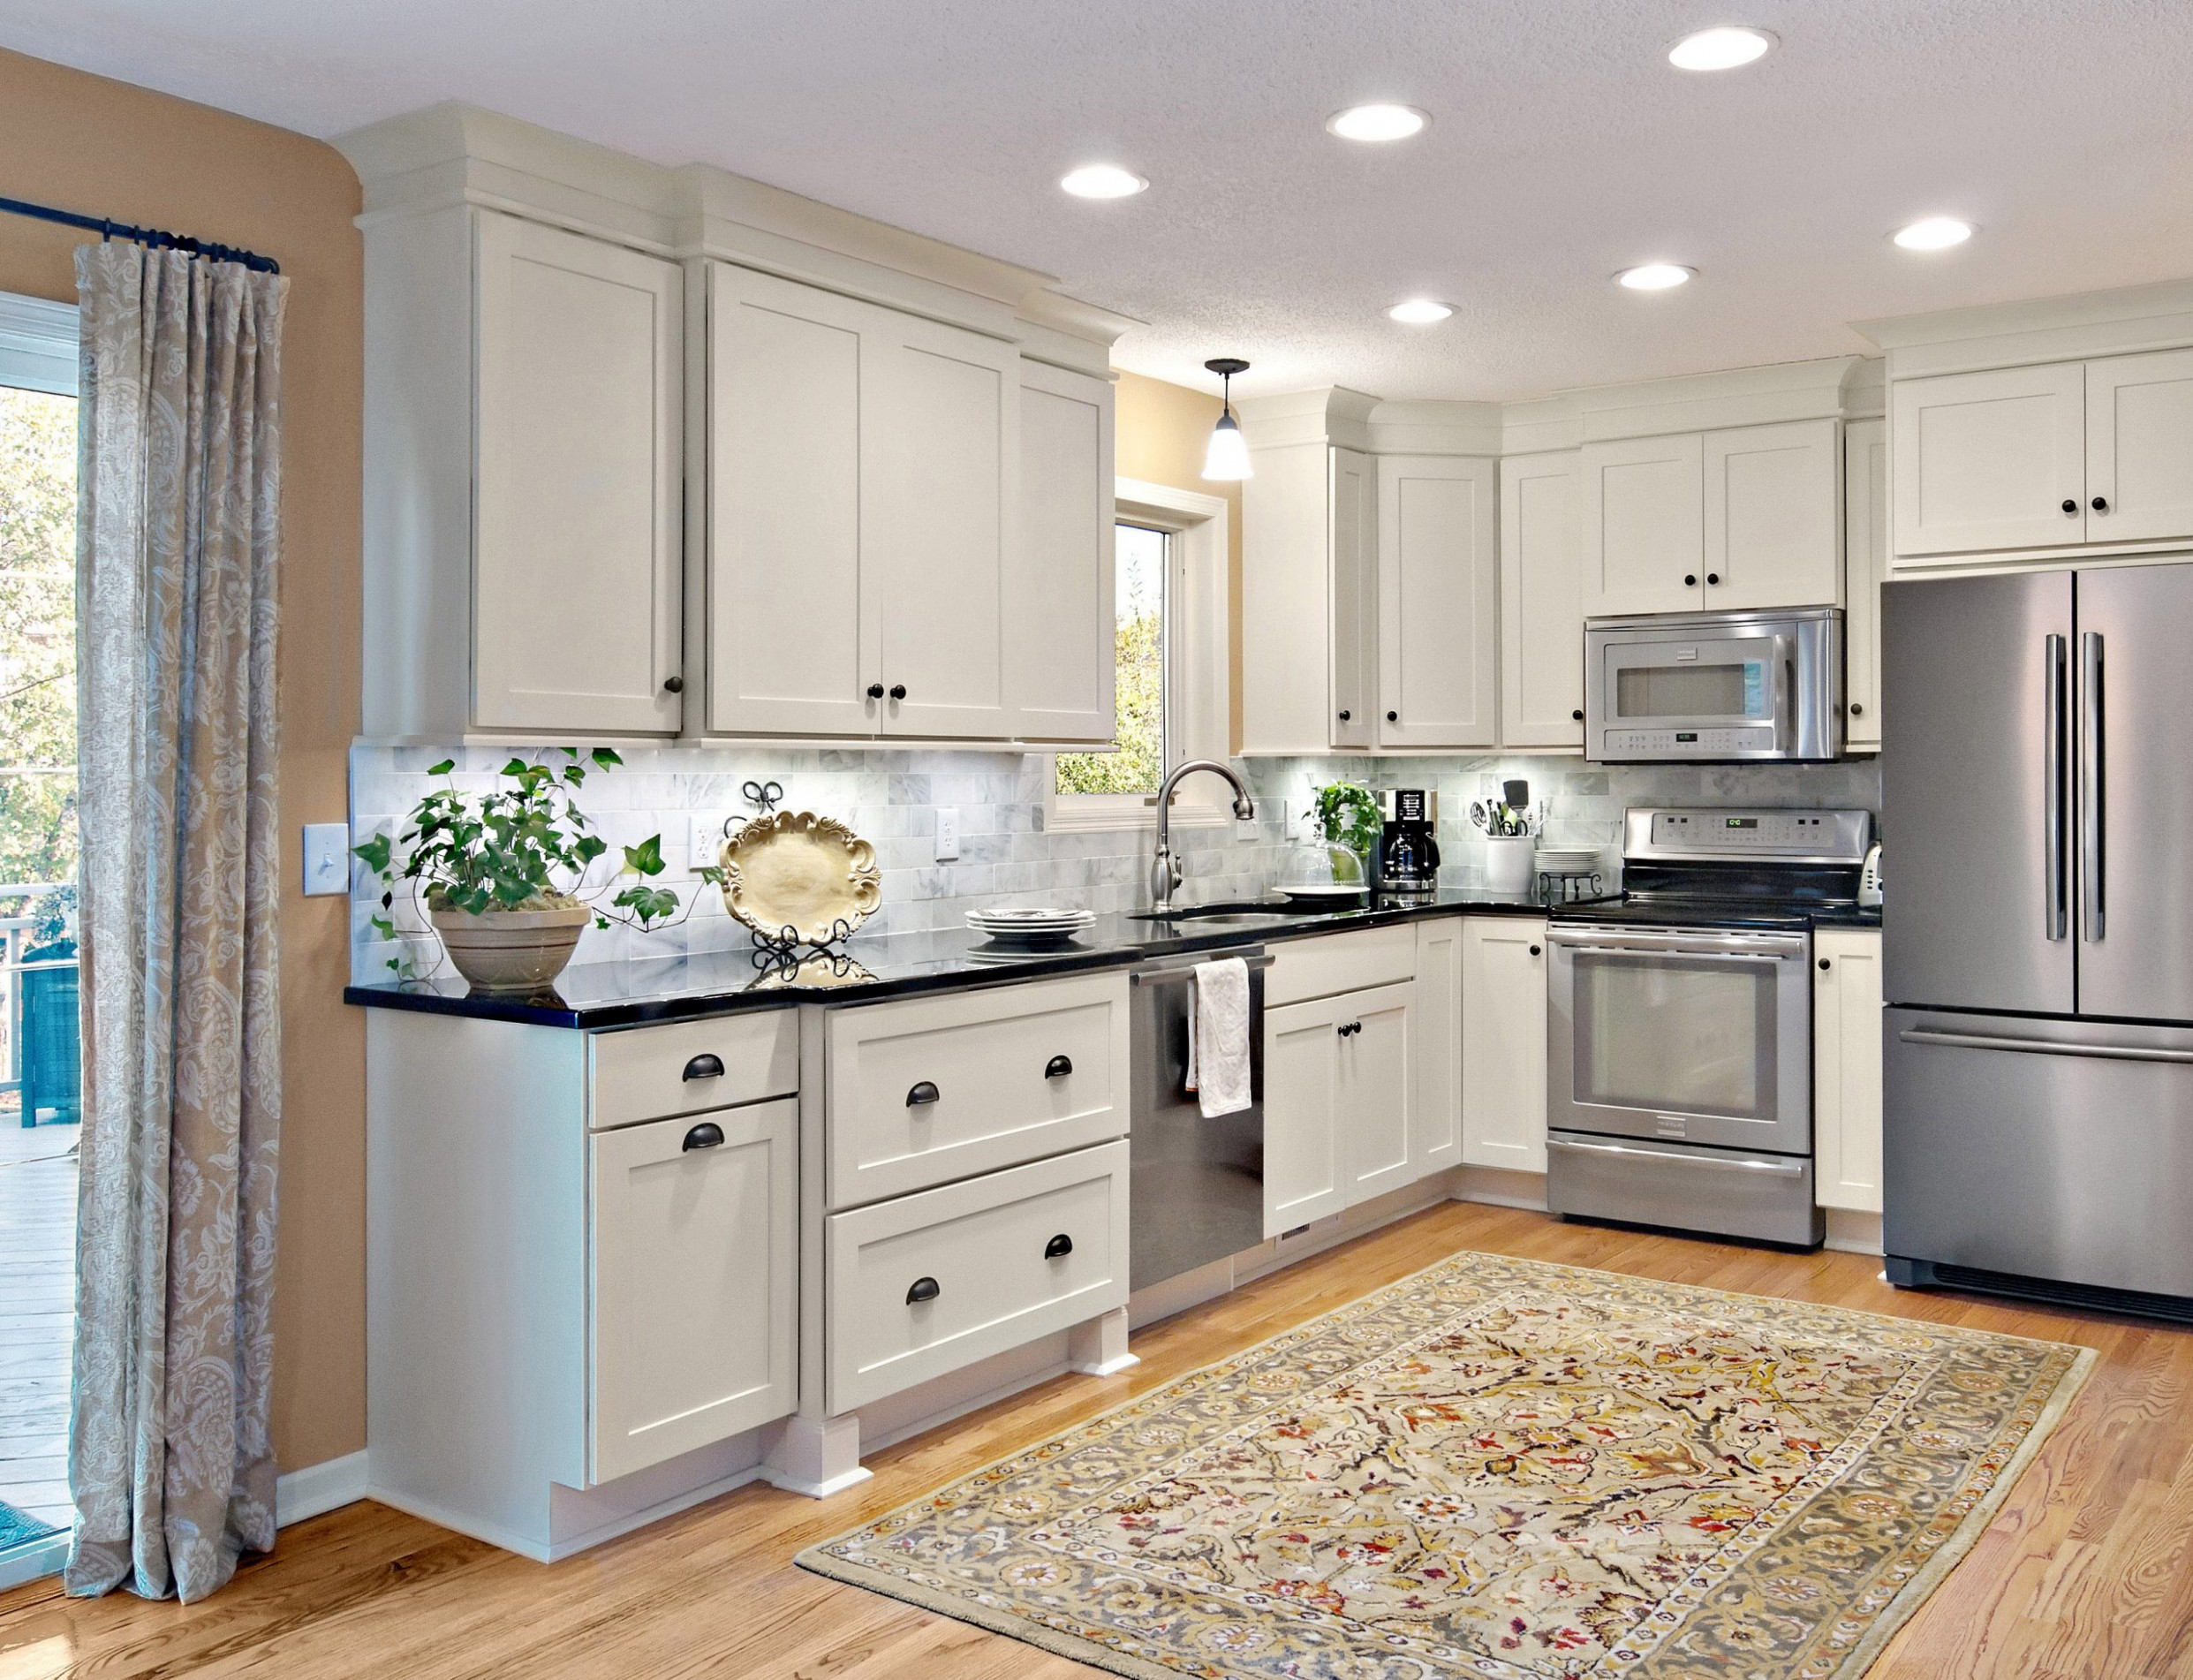 Marpro Cabinets Refacing & Kitchen Cabinets Painting Niles, IL - Kitchen Cabinets Niles